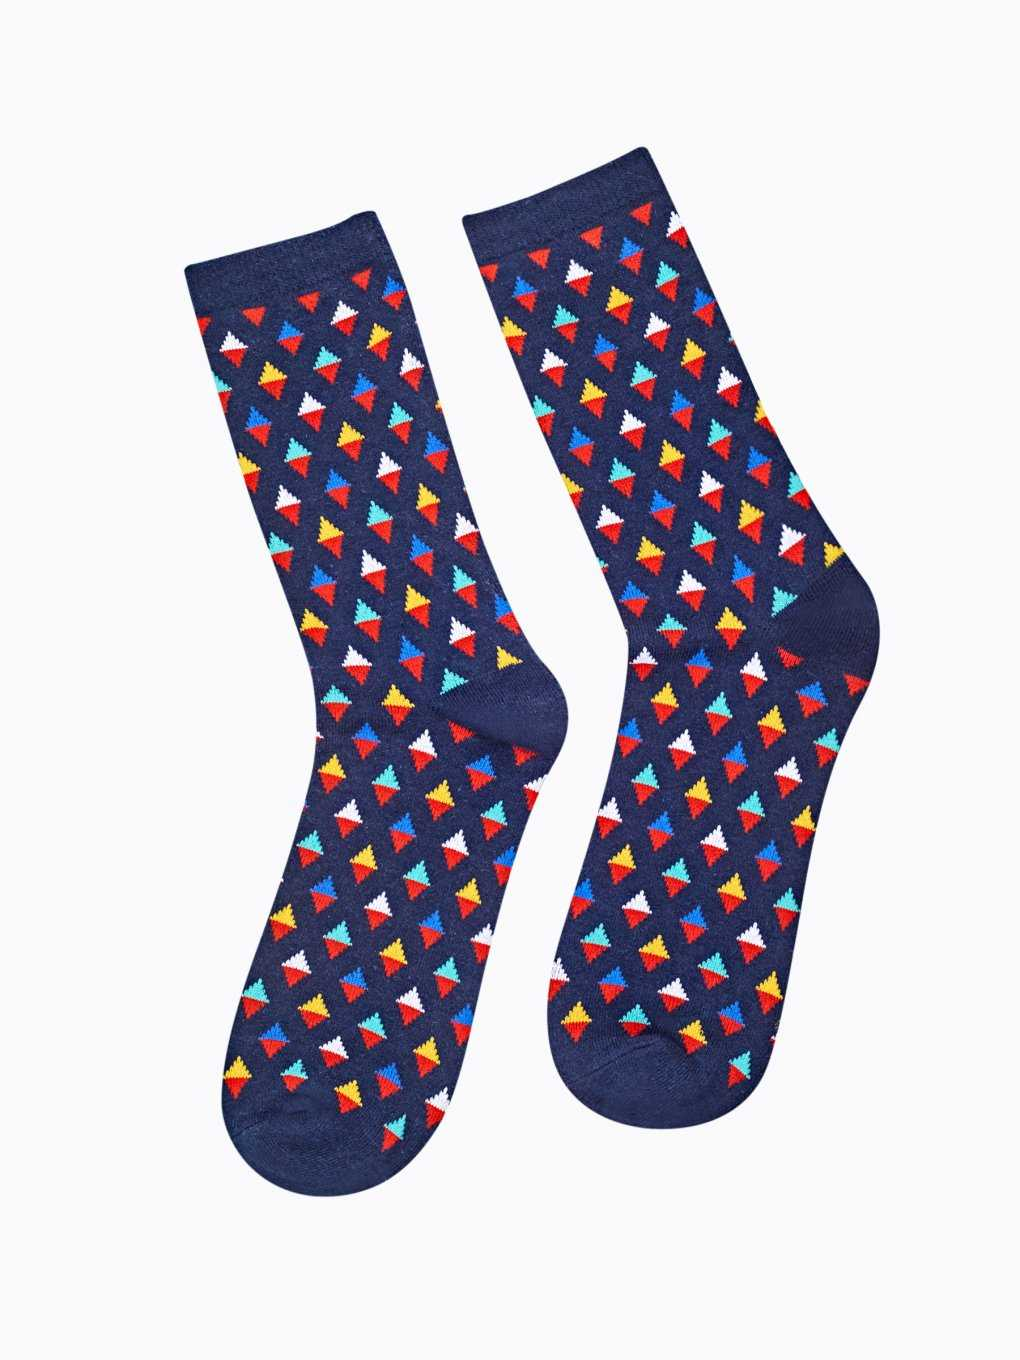 Patterned crew socks